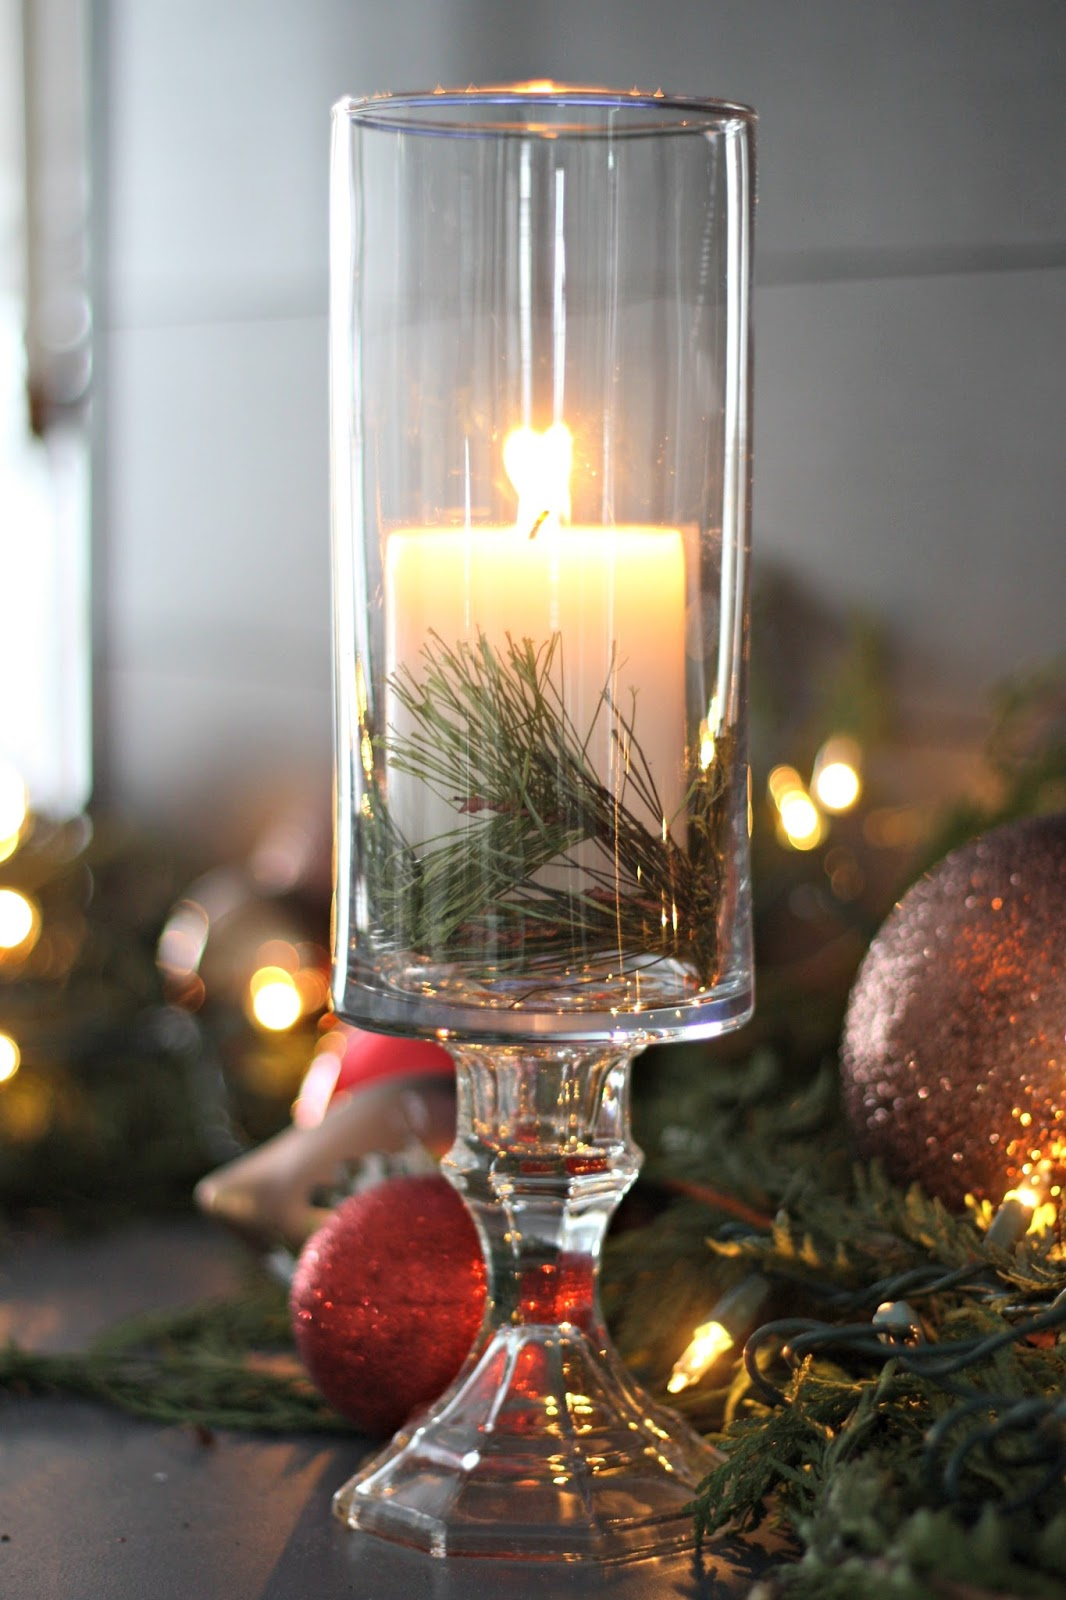 DIY dollar store pedestal candle with greenery